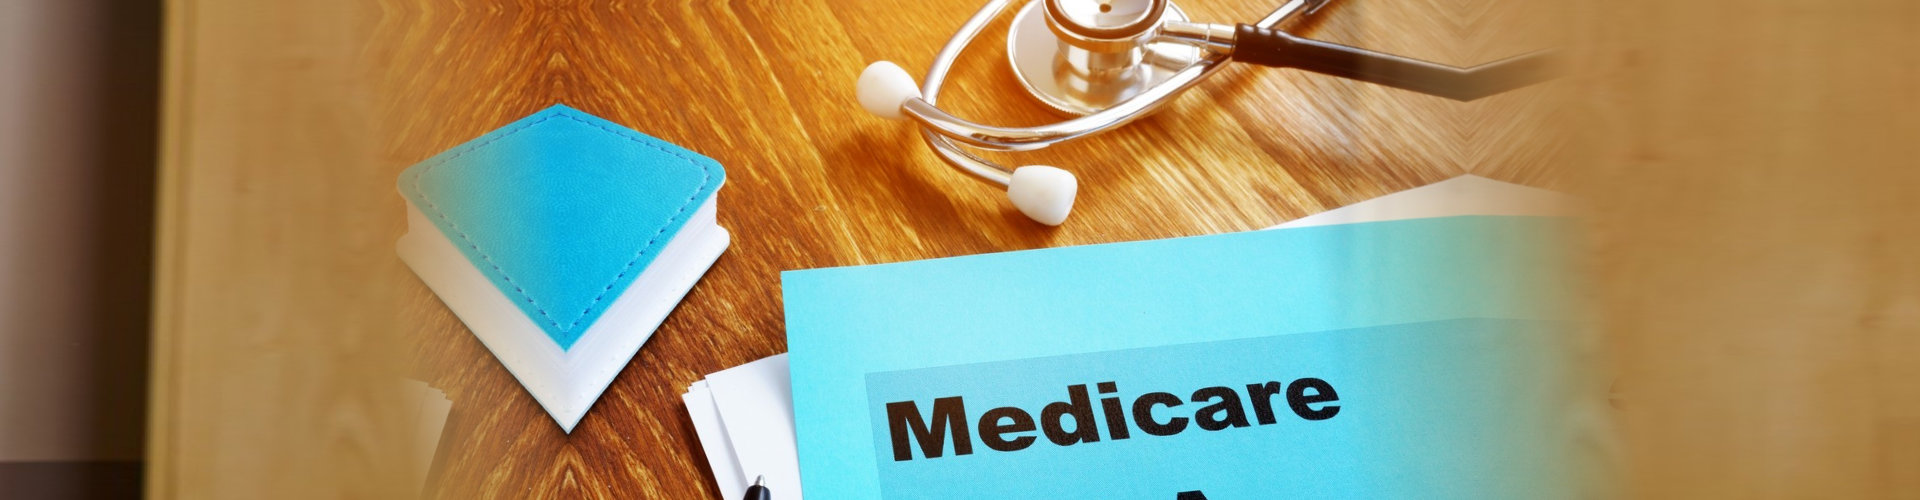 medicare text and with stethoscope